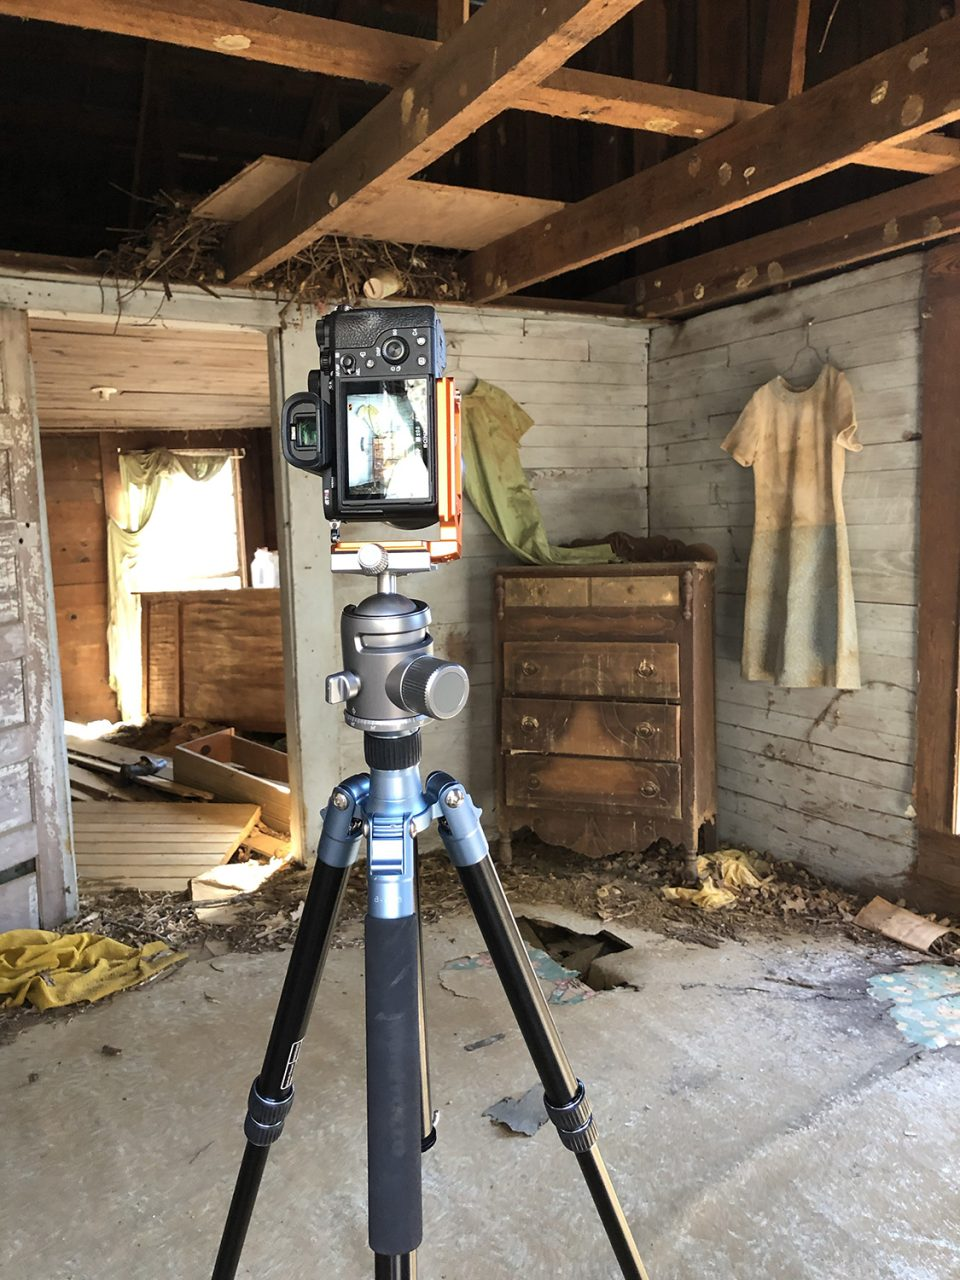 A look at my camera on a tripod inside the old house. The floor was extremely sketchy for walking but it supported the tripod with no problem.